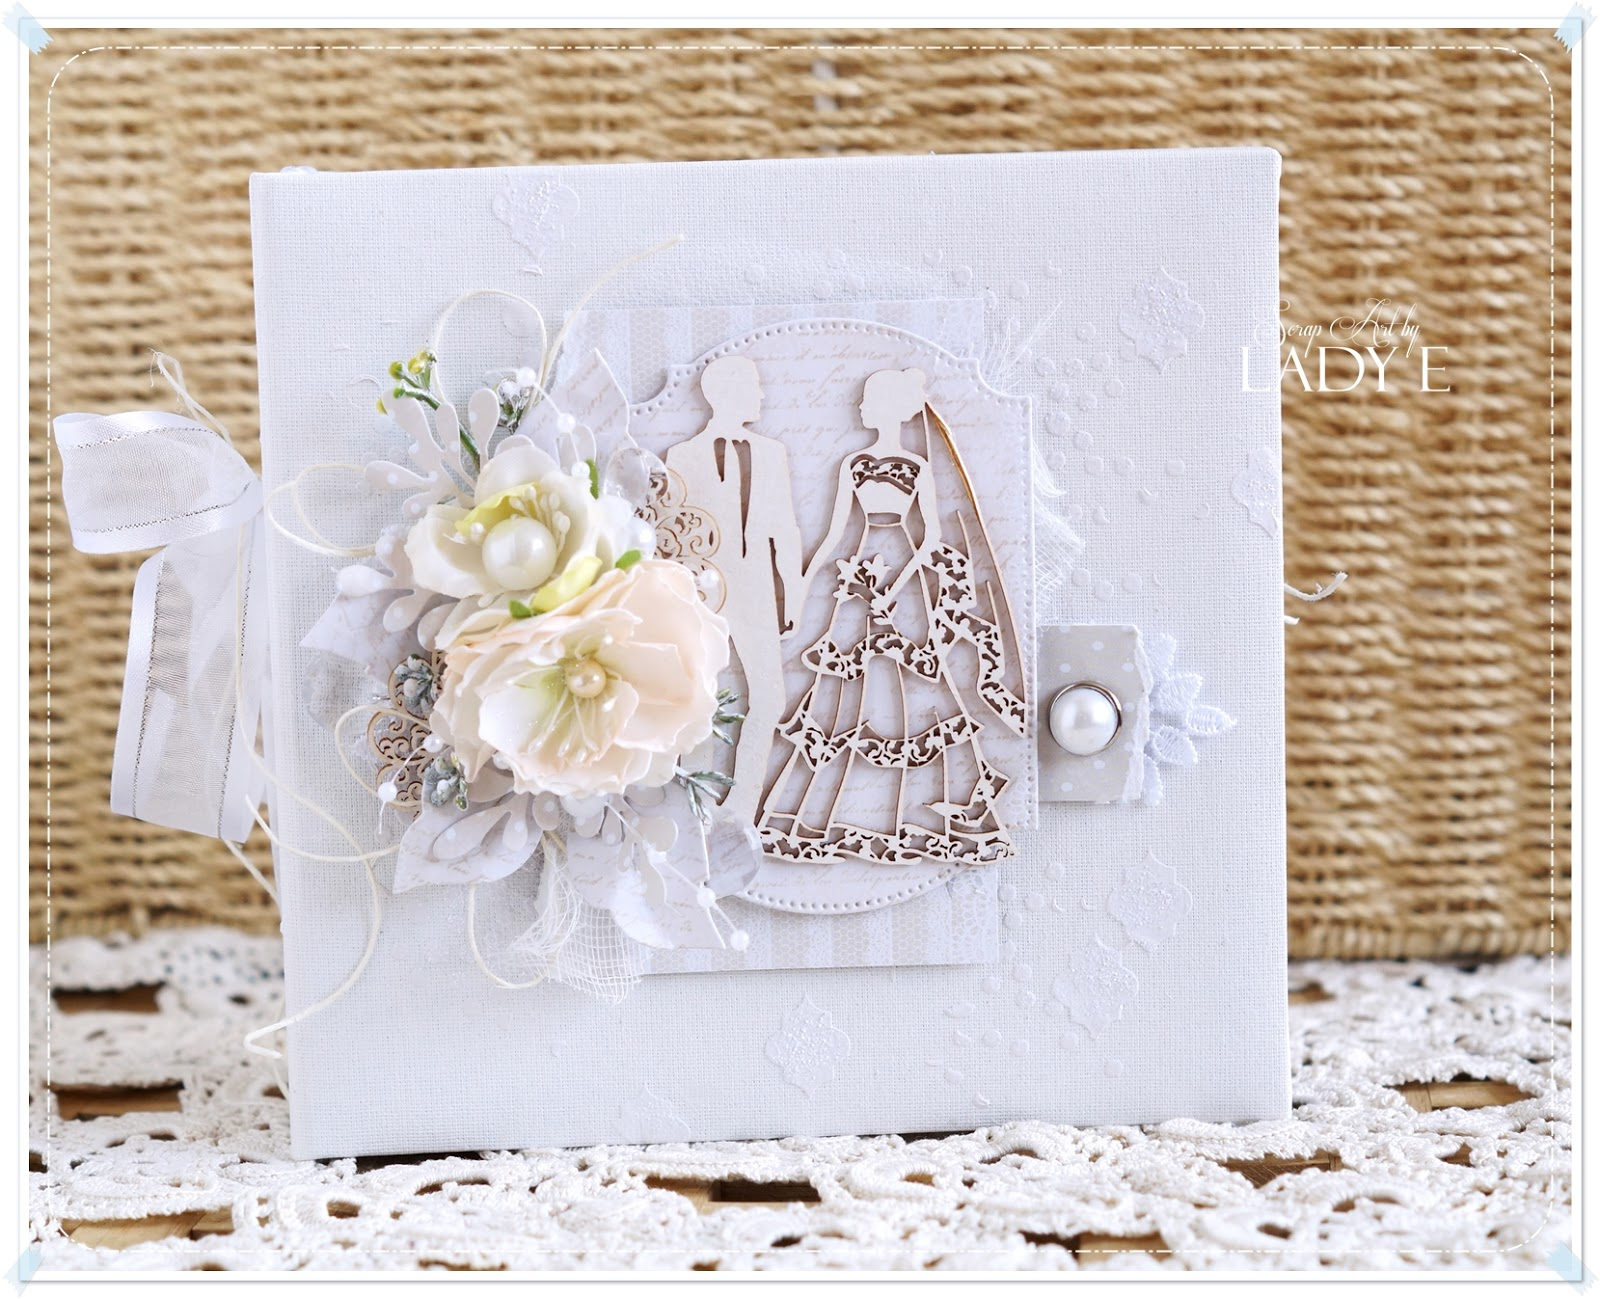 Perfect Wedding Gift For Bride: Scrap And Craft: Perfect Wedding Gift